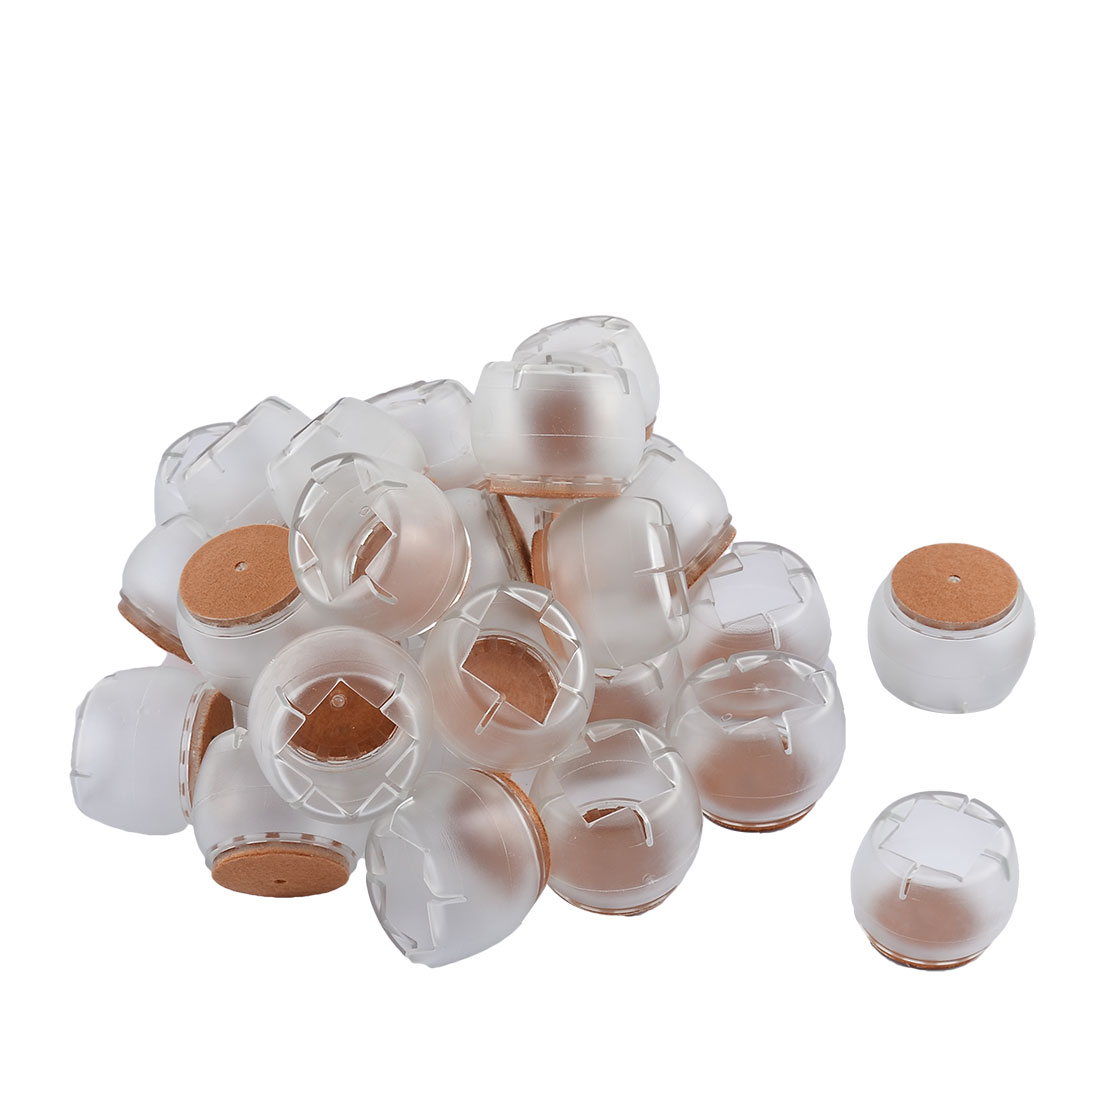 Home Silicone Round Bottom Furniture Floor Protector Table Desk Leg Pad Cap Cover Tip Clear 4.6 x 3.5cm 32pcs